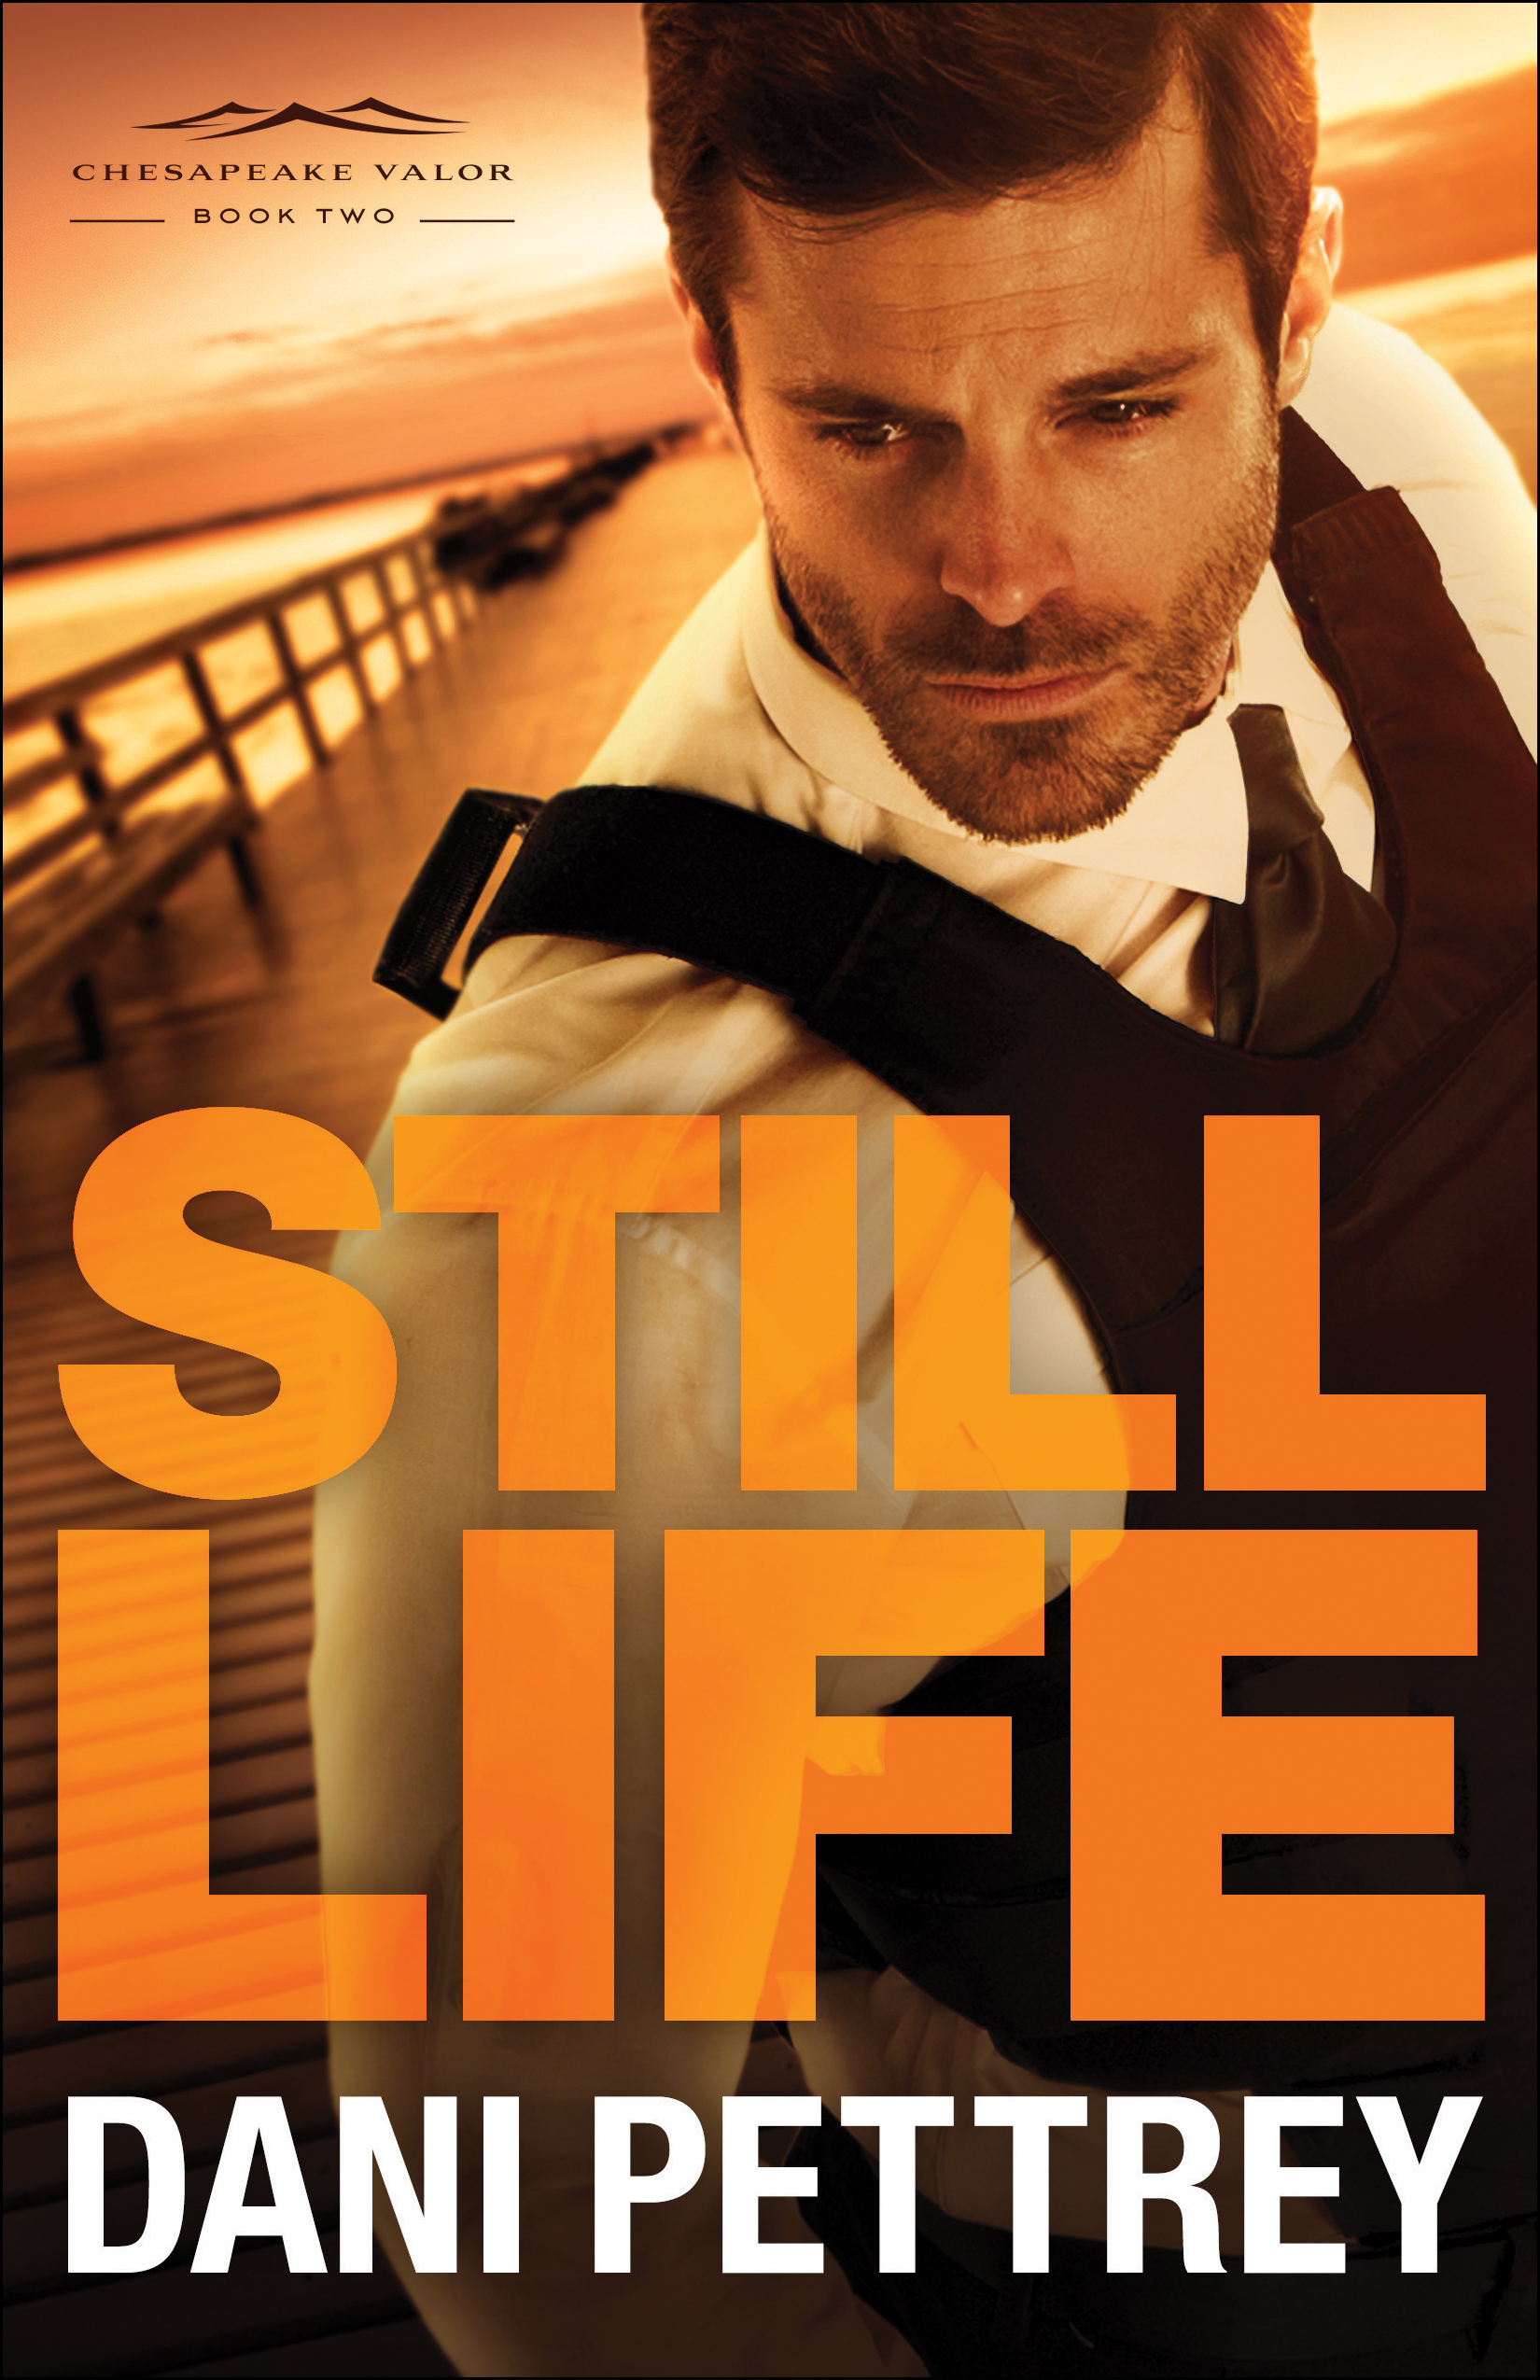 Book review of Still Life by Dani Pettrey (Bethany House) by papertapepins